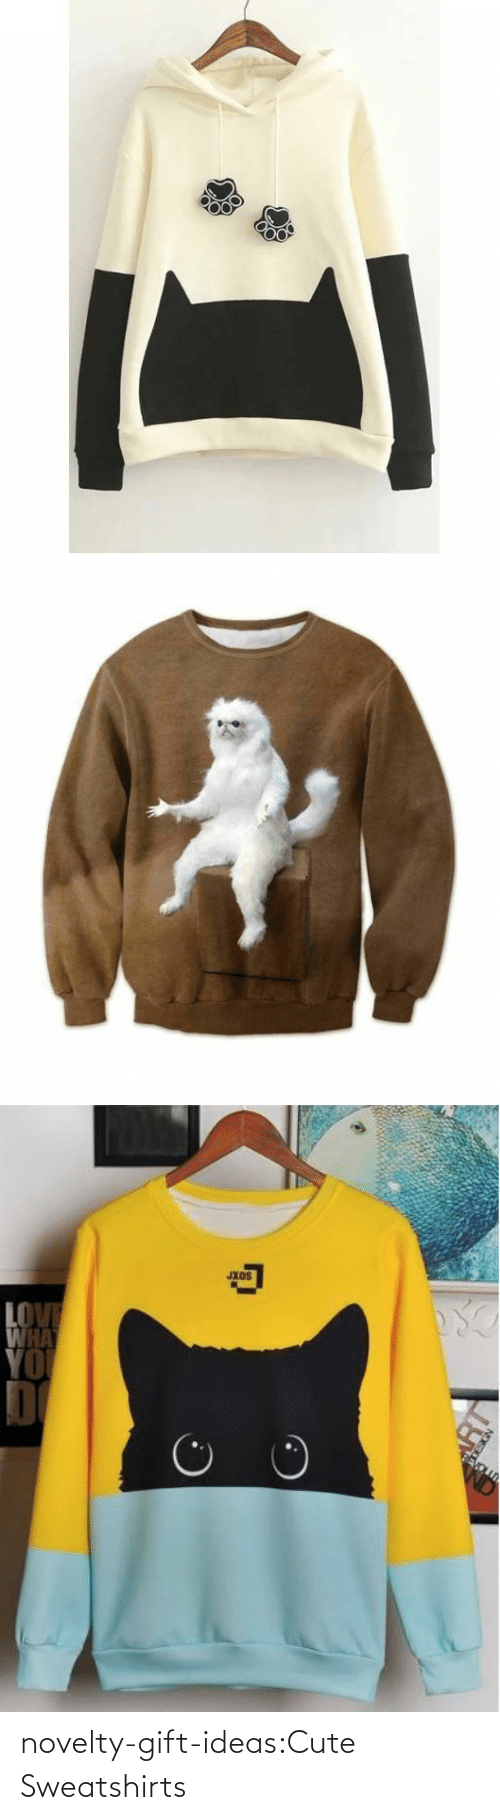 Animals, Cute, and Cute Animals: Jxos  HA novelty-gift-ideas:Cute Sweatshirts